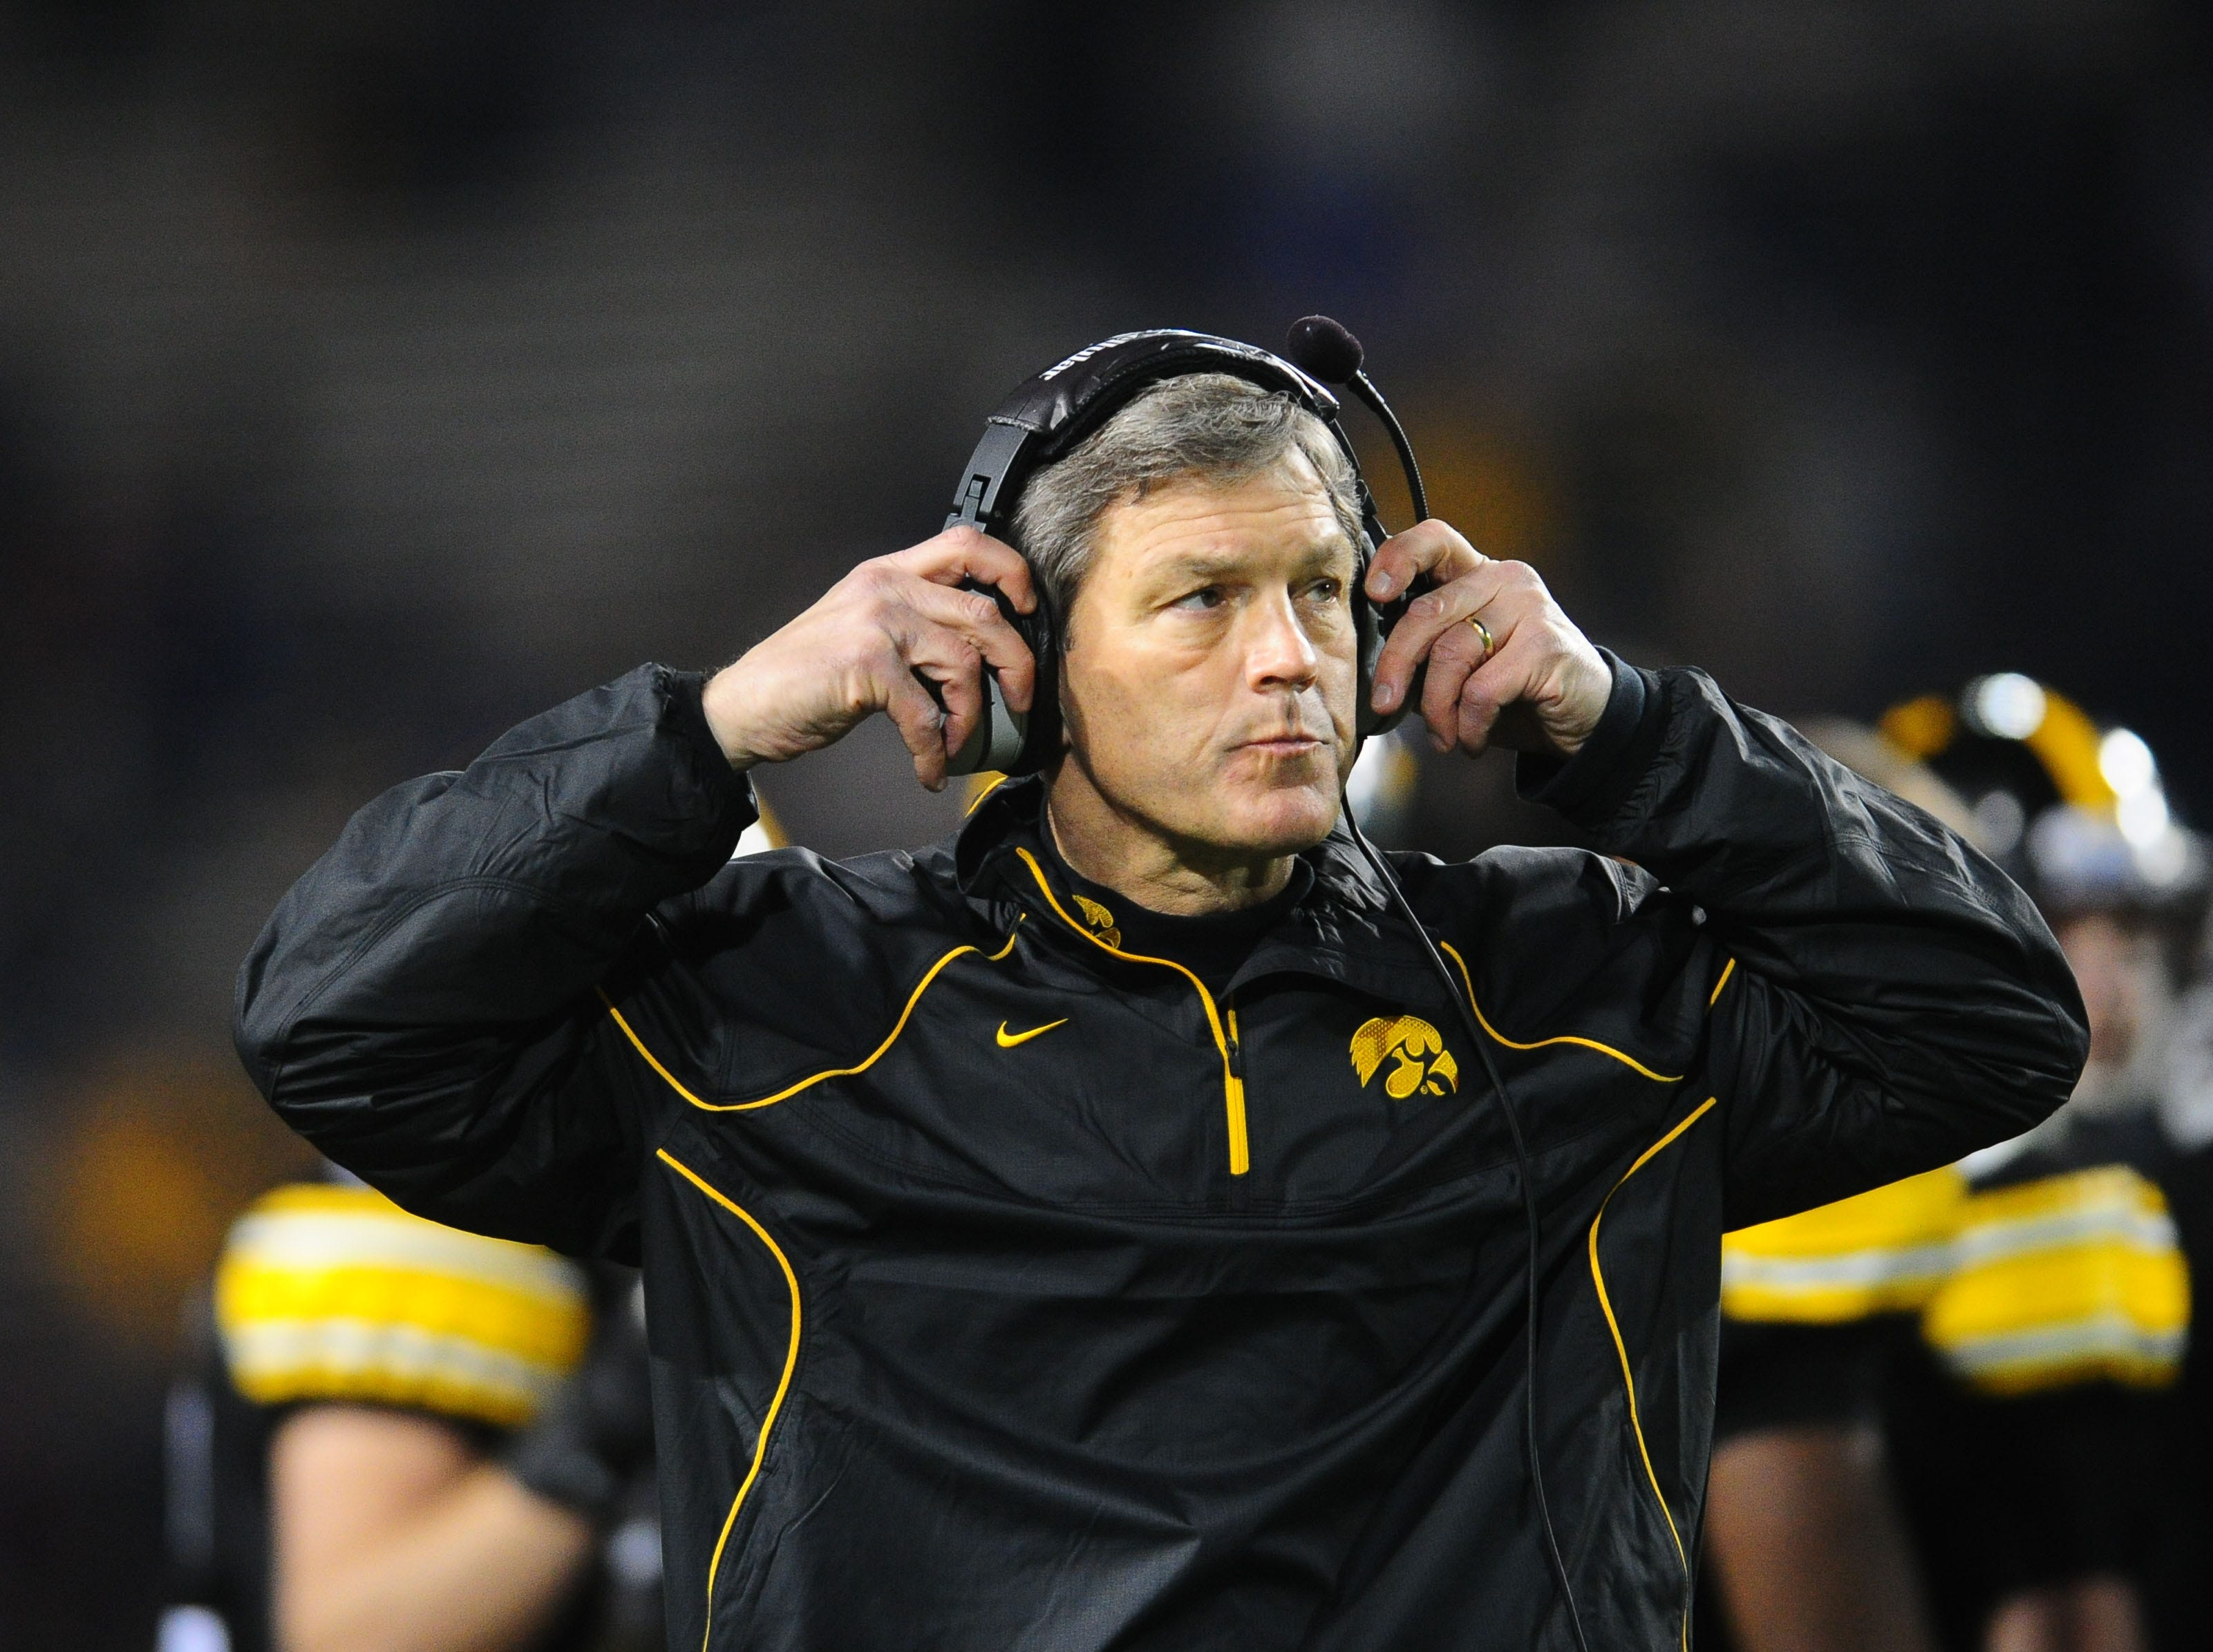 Dec. 28, 2010; Tempe, AZ, USA; Iowa Hawkeyes head coach Kirk Ferentz against the Missouri Tigers in the 2010 Insight Bowl at Sun Devil Stadium. Iowa defeated Missouri 27-24. Mandatory Credit: Mark J. Rebilas-USA TODAY Sports